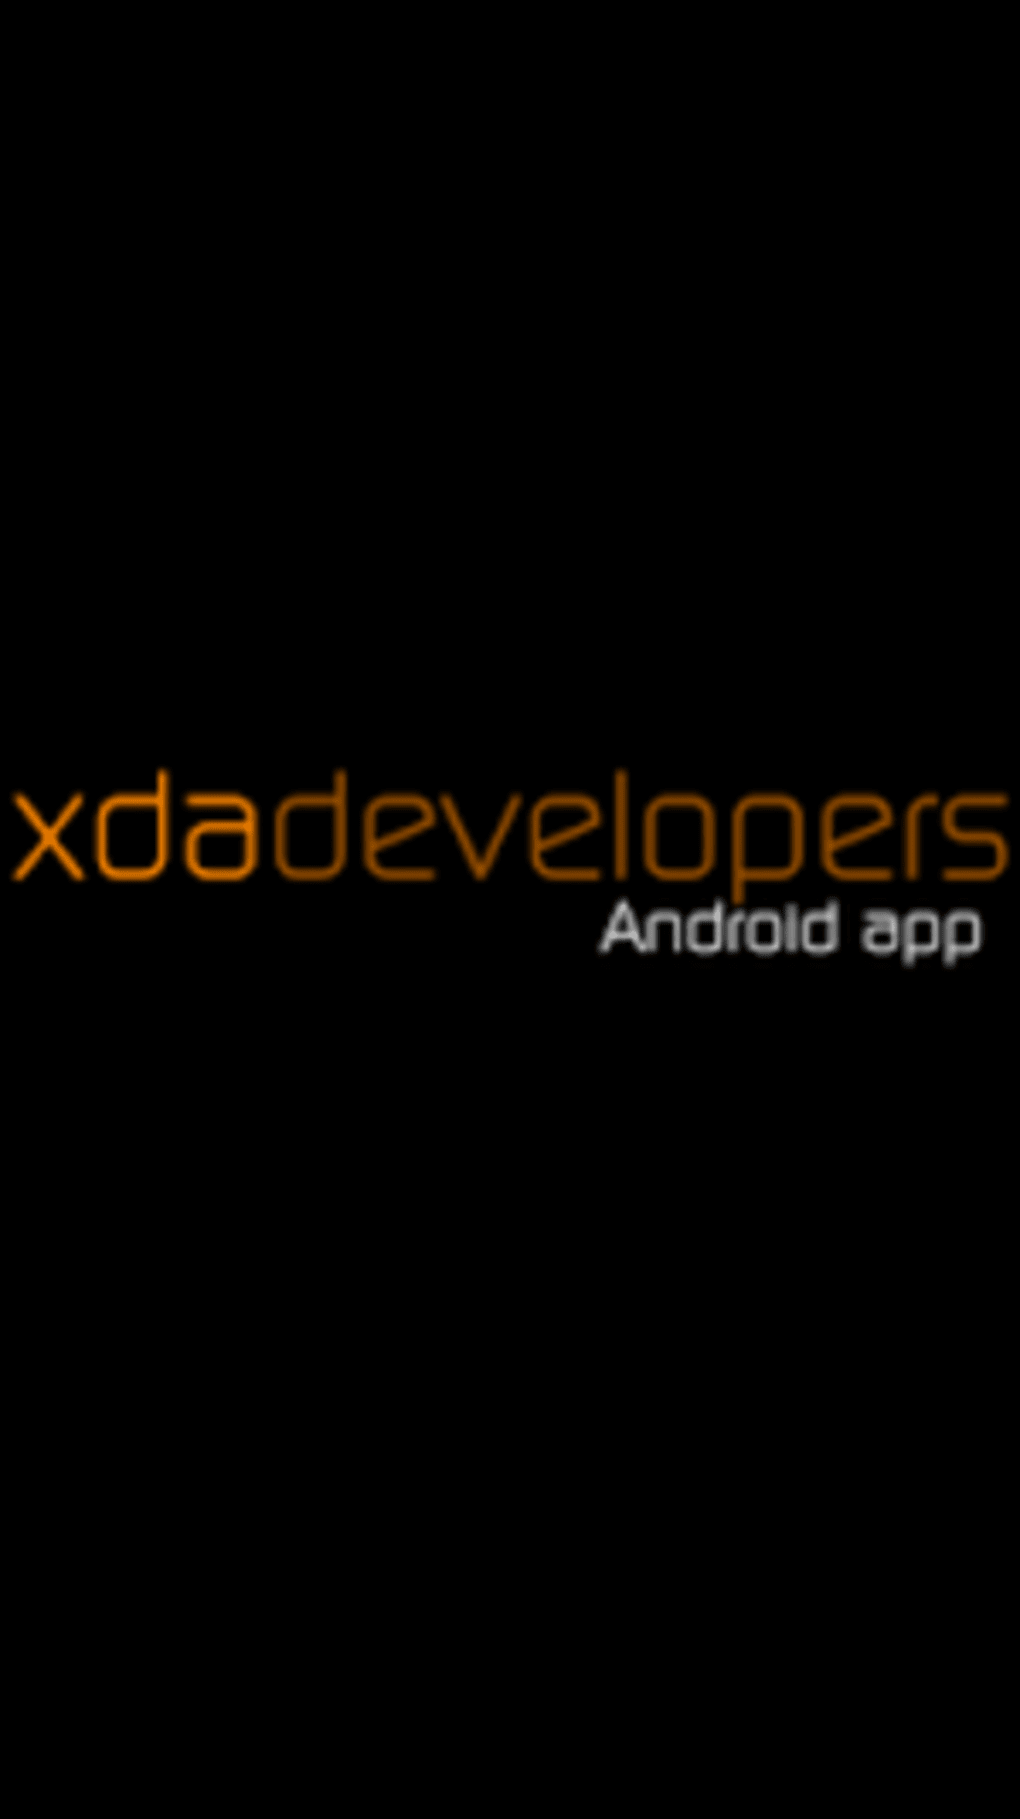 XDA-Developers for Android - Download